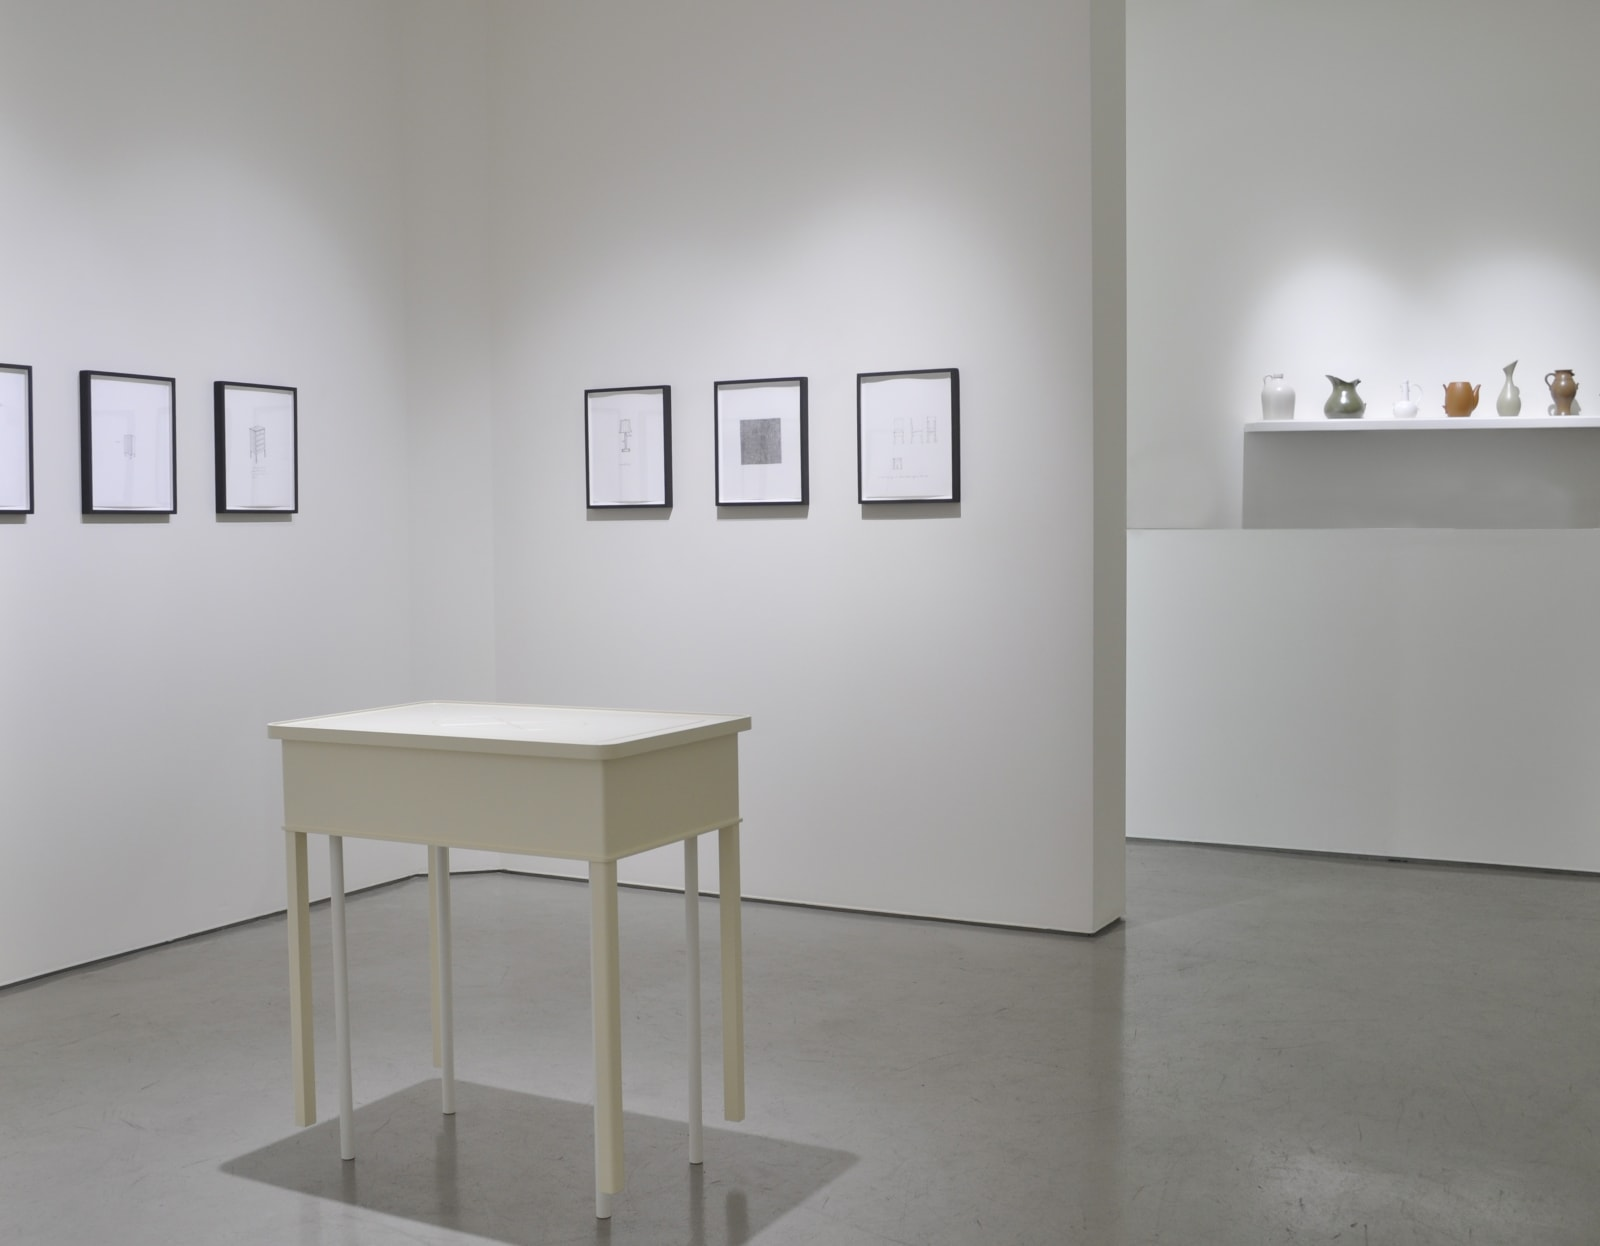 ROY MCMAKIN | Some Drawings and a Table